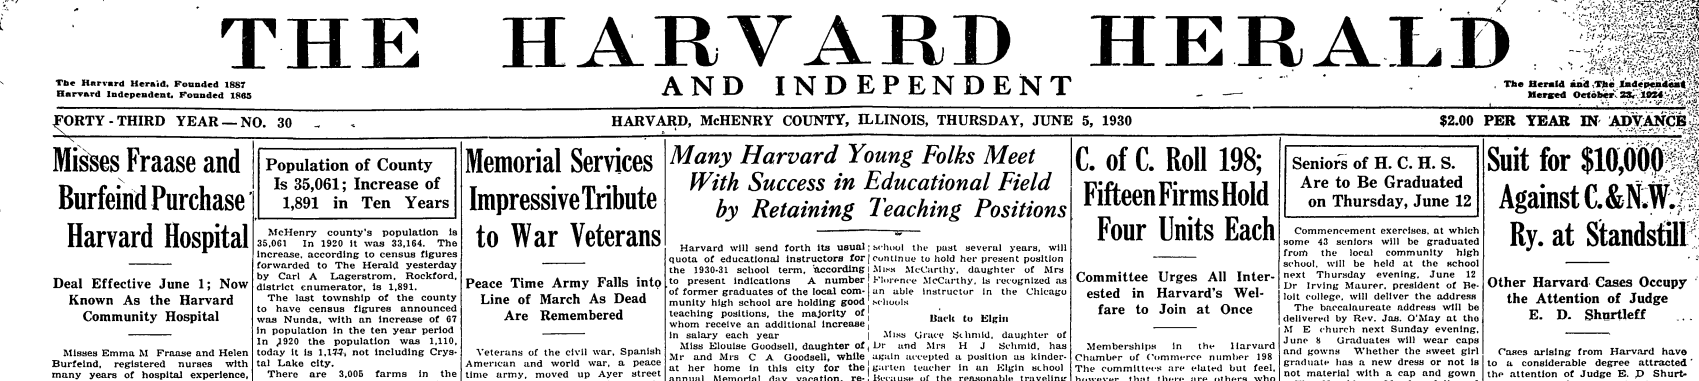 Harvard Newspaper History Now Digitally Available